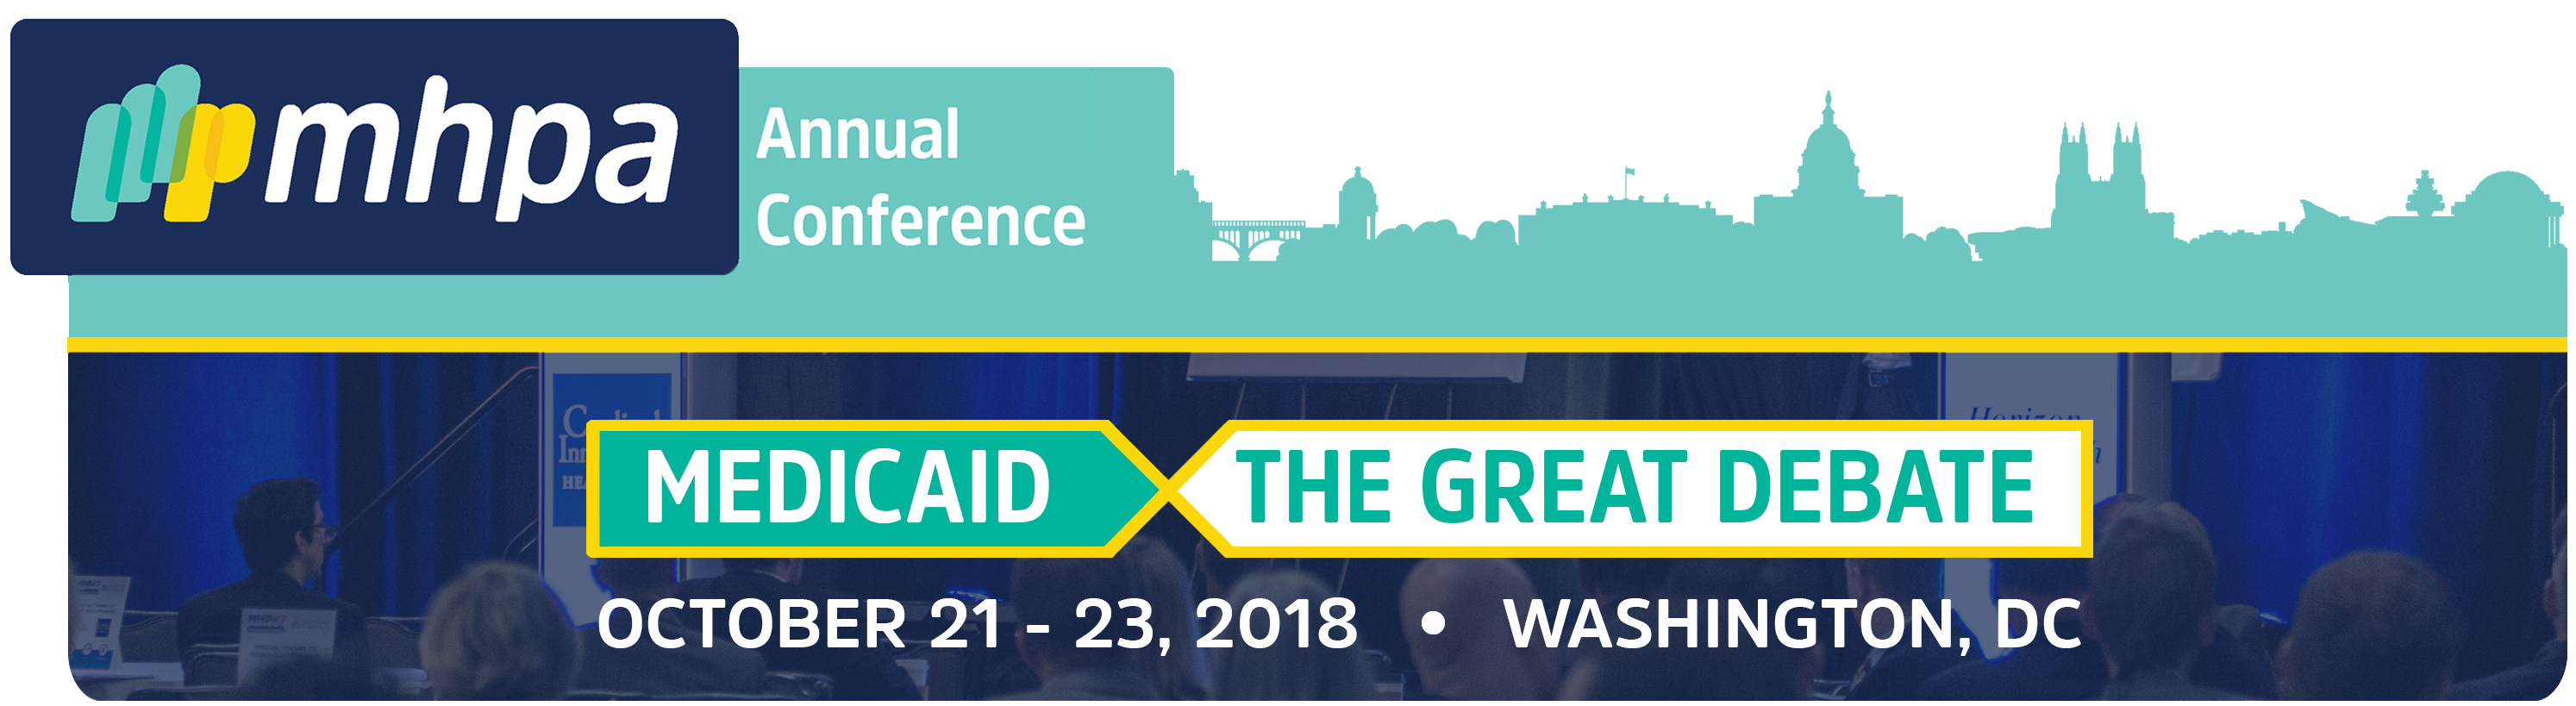 MHPA Annual Conference: Medicaid - The Great Debate